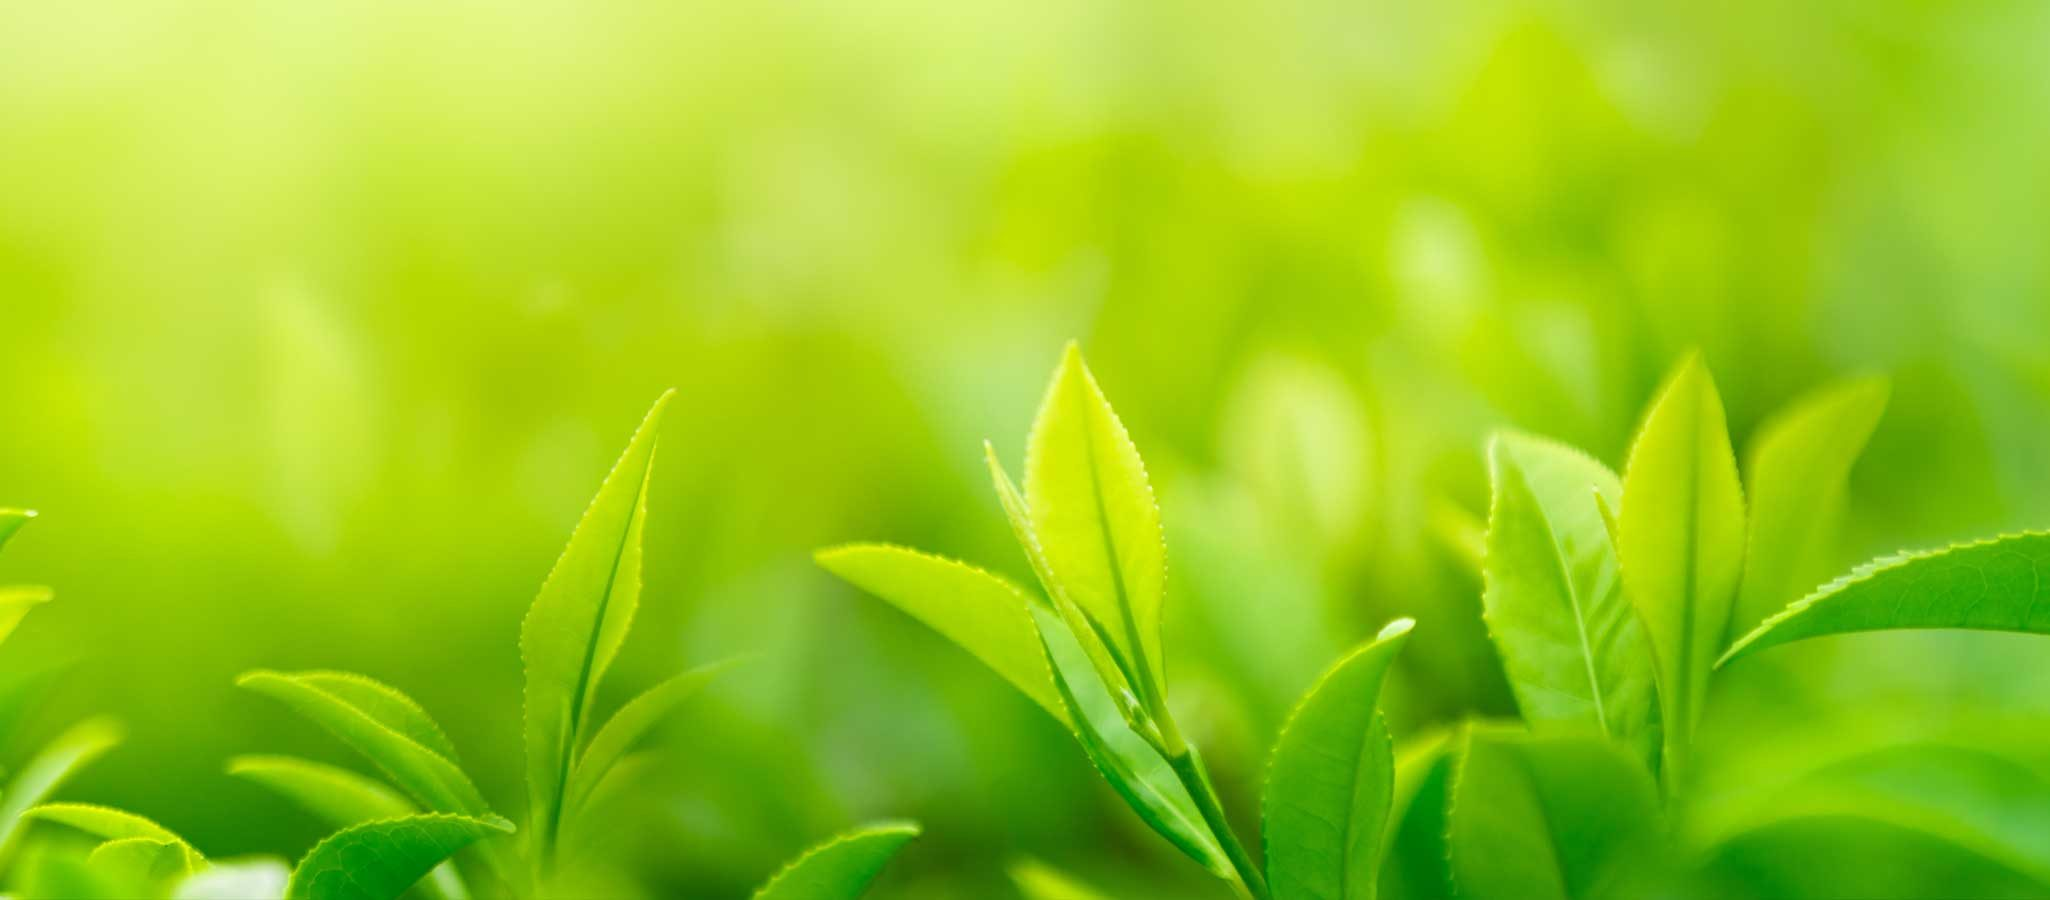 A close up photo of a verdant green plant in a wild field